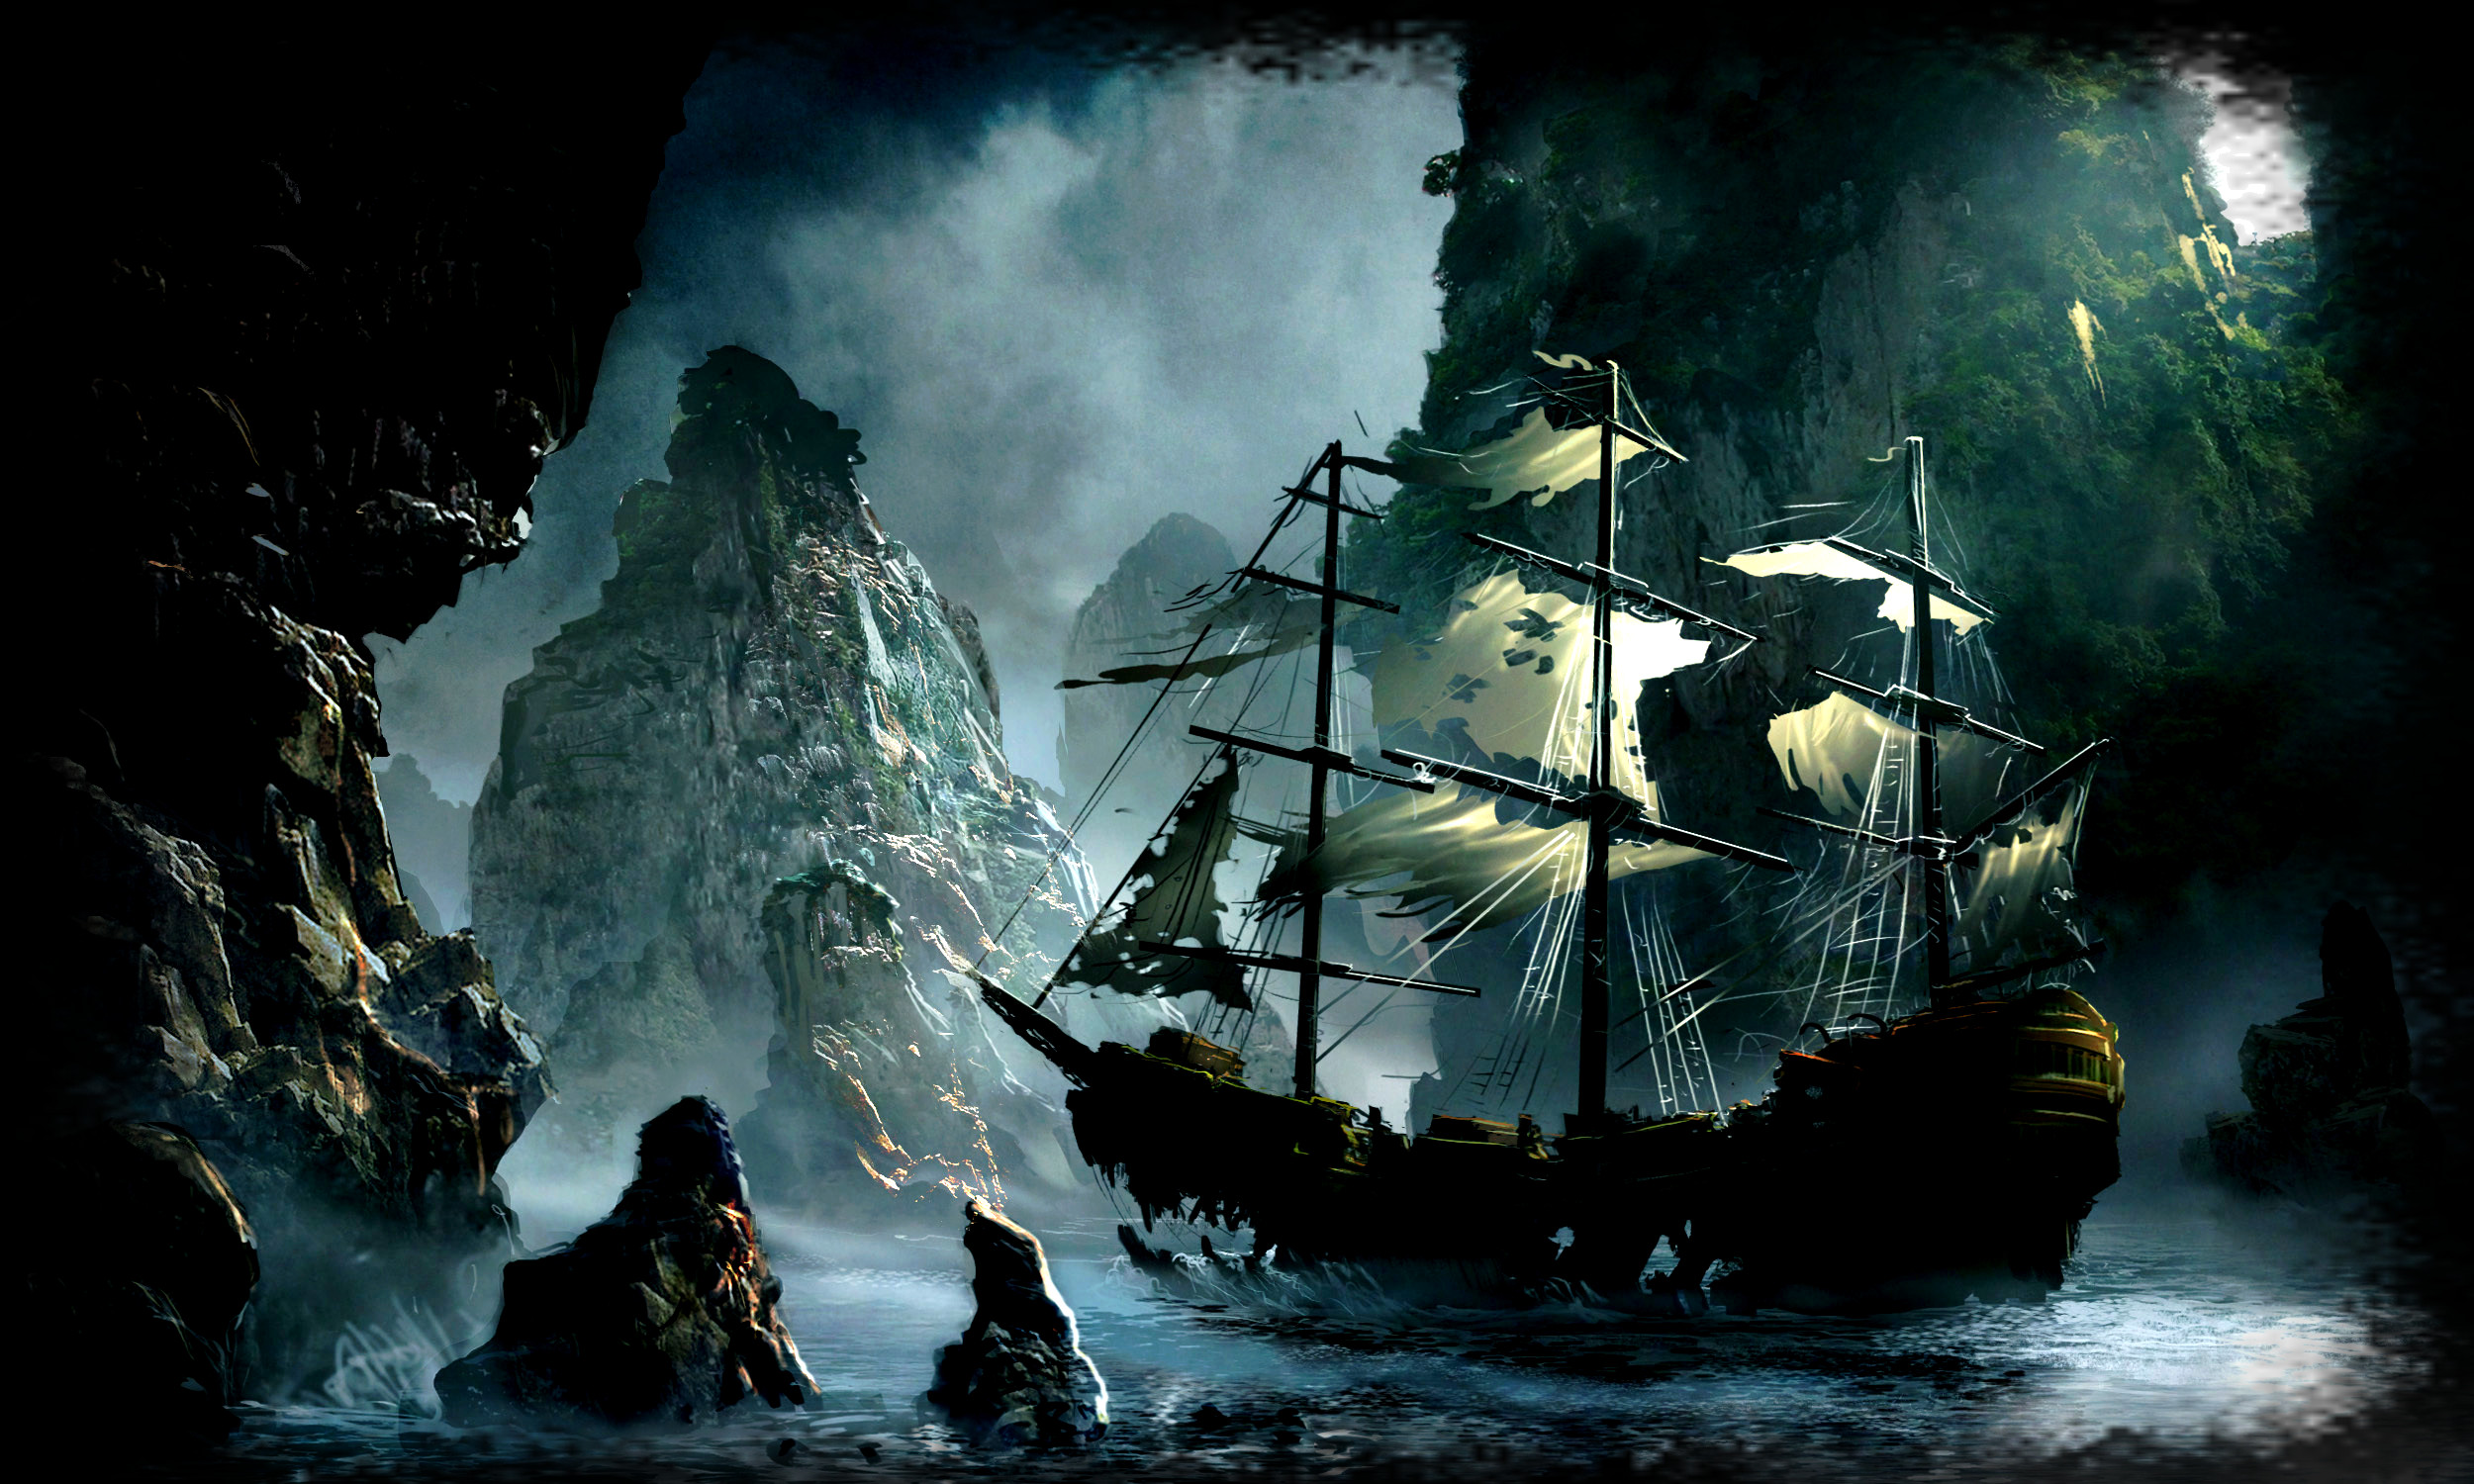 Pirate ship wallpaper hd 71 images - Pirate background ...